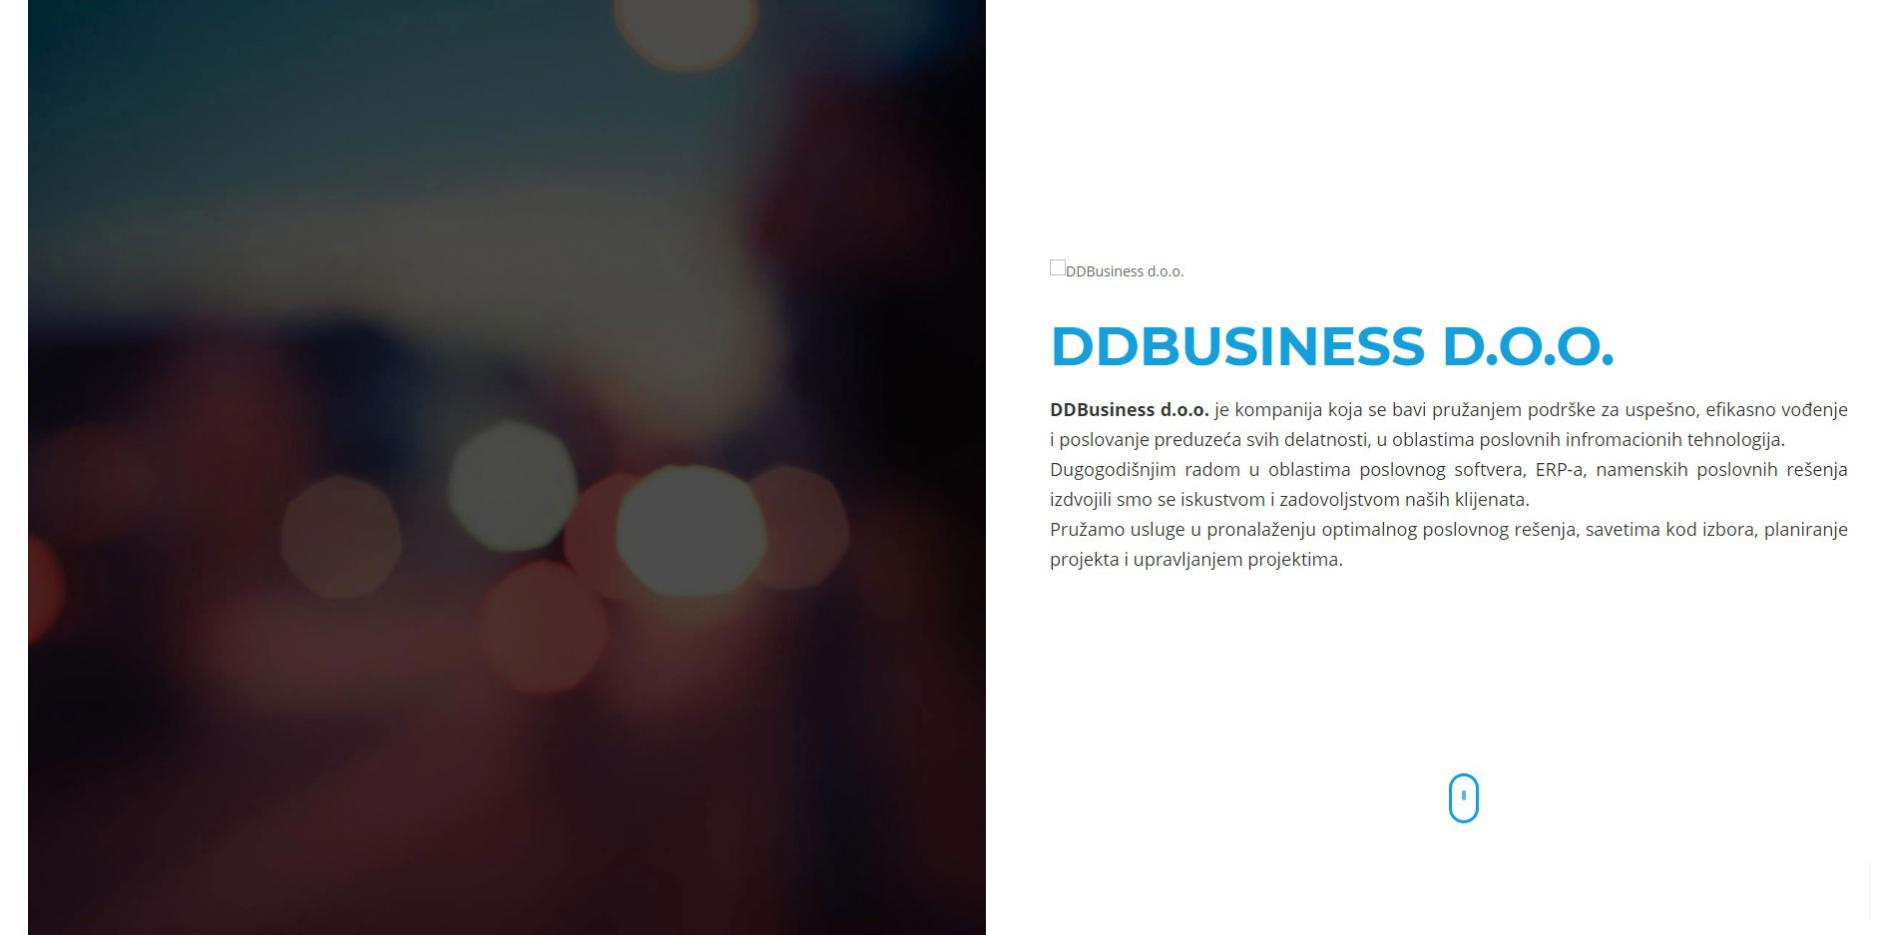 DDBusiness